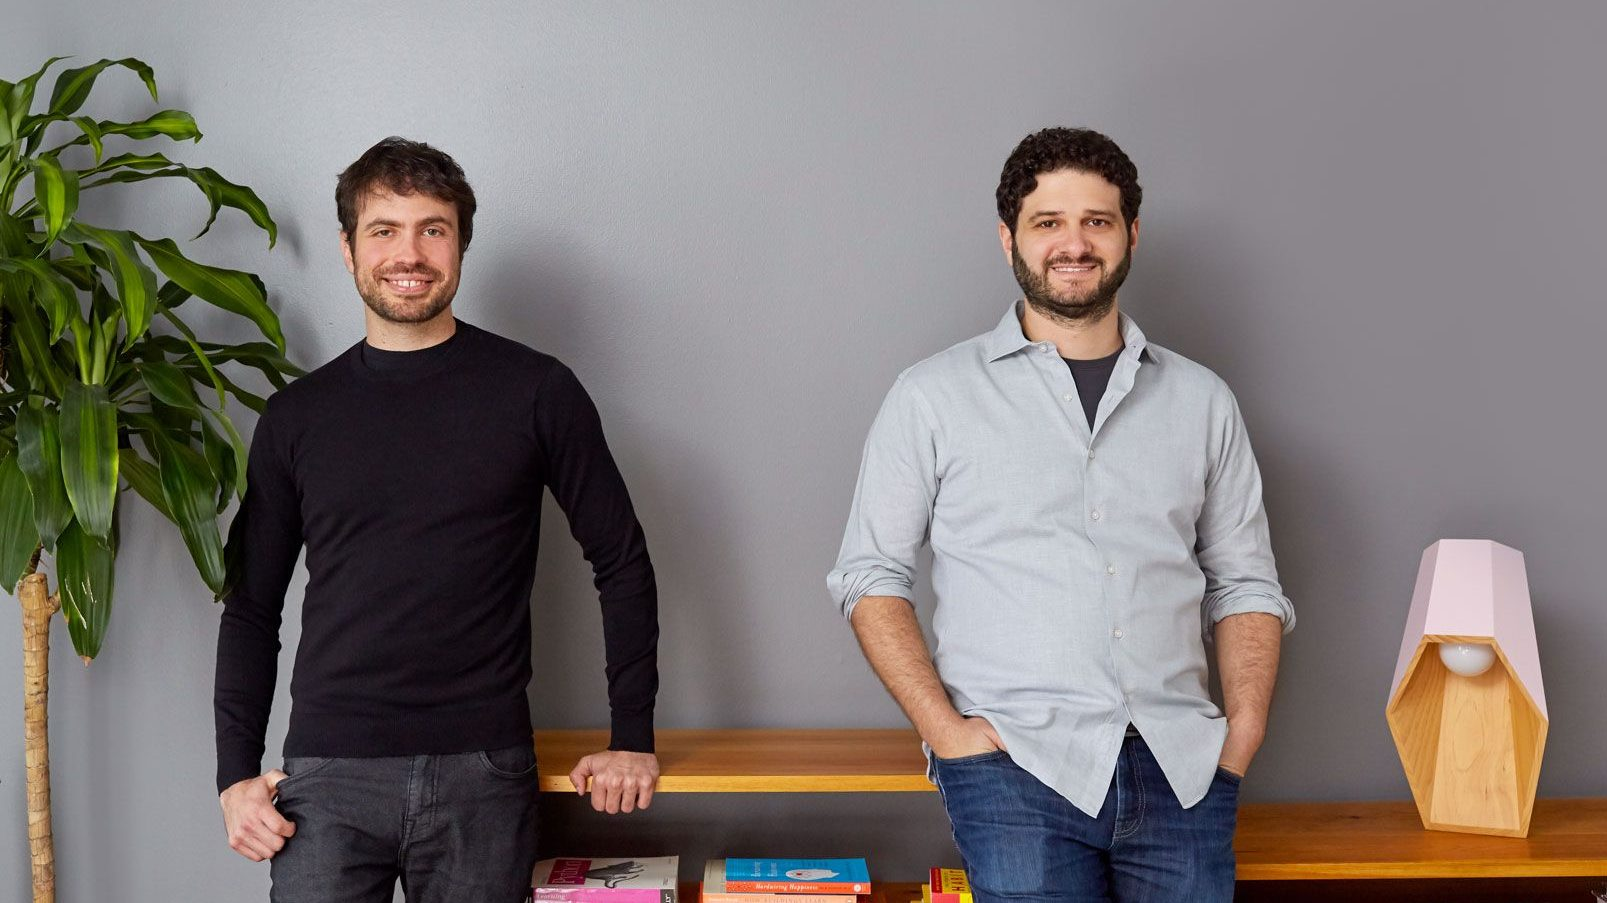 Two Facebook engineers built a tool to cut down on meetings. Now it's a $900 million company